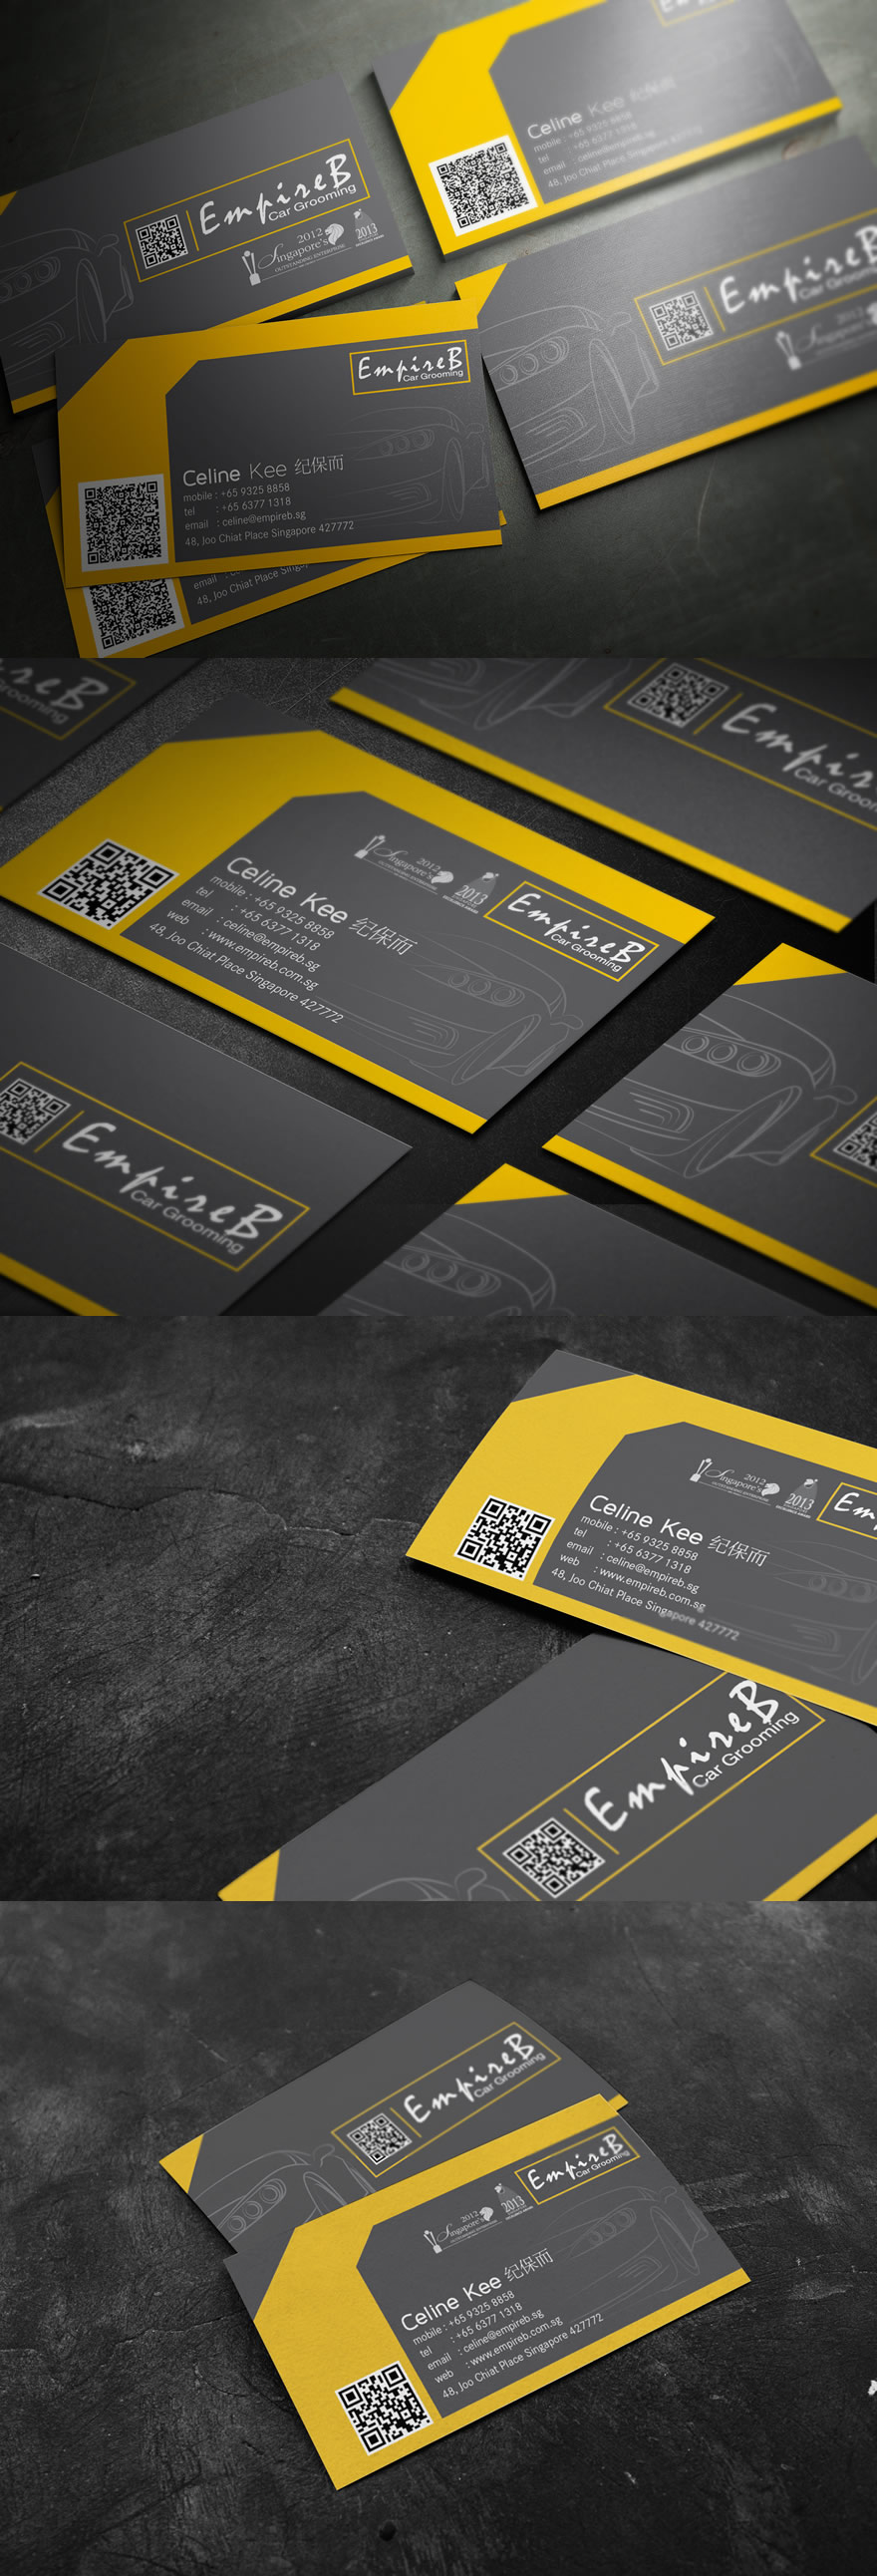 Empireb-car-grooming-business-card-design-creattica-big